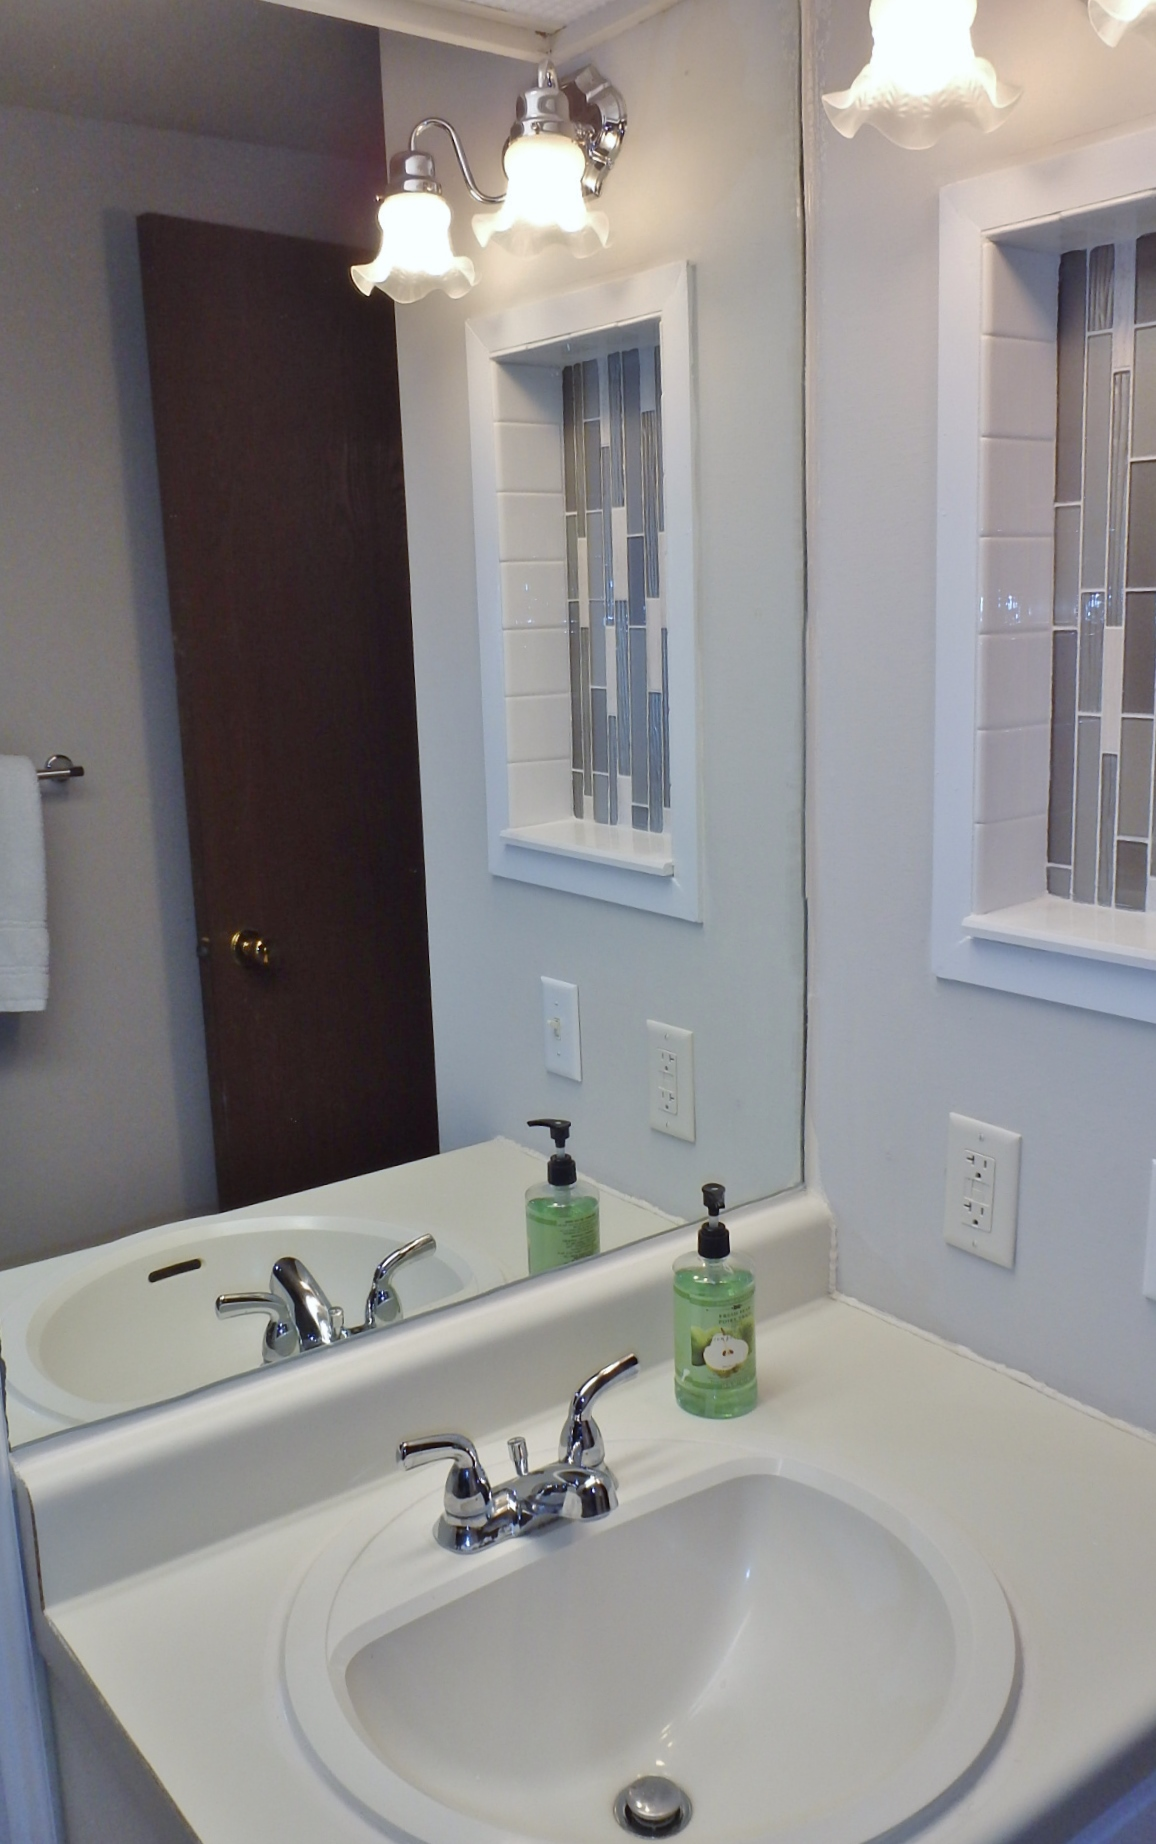 Bathroom vanity photo at 1606 Blue Course Drive.